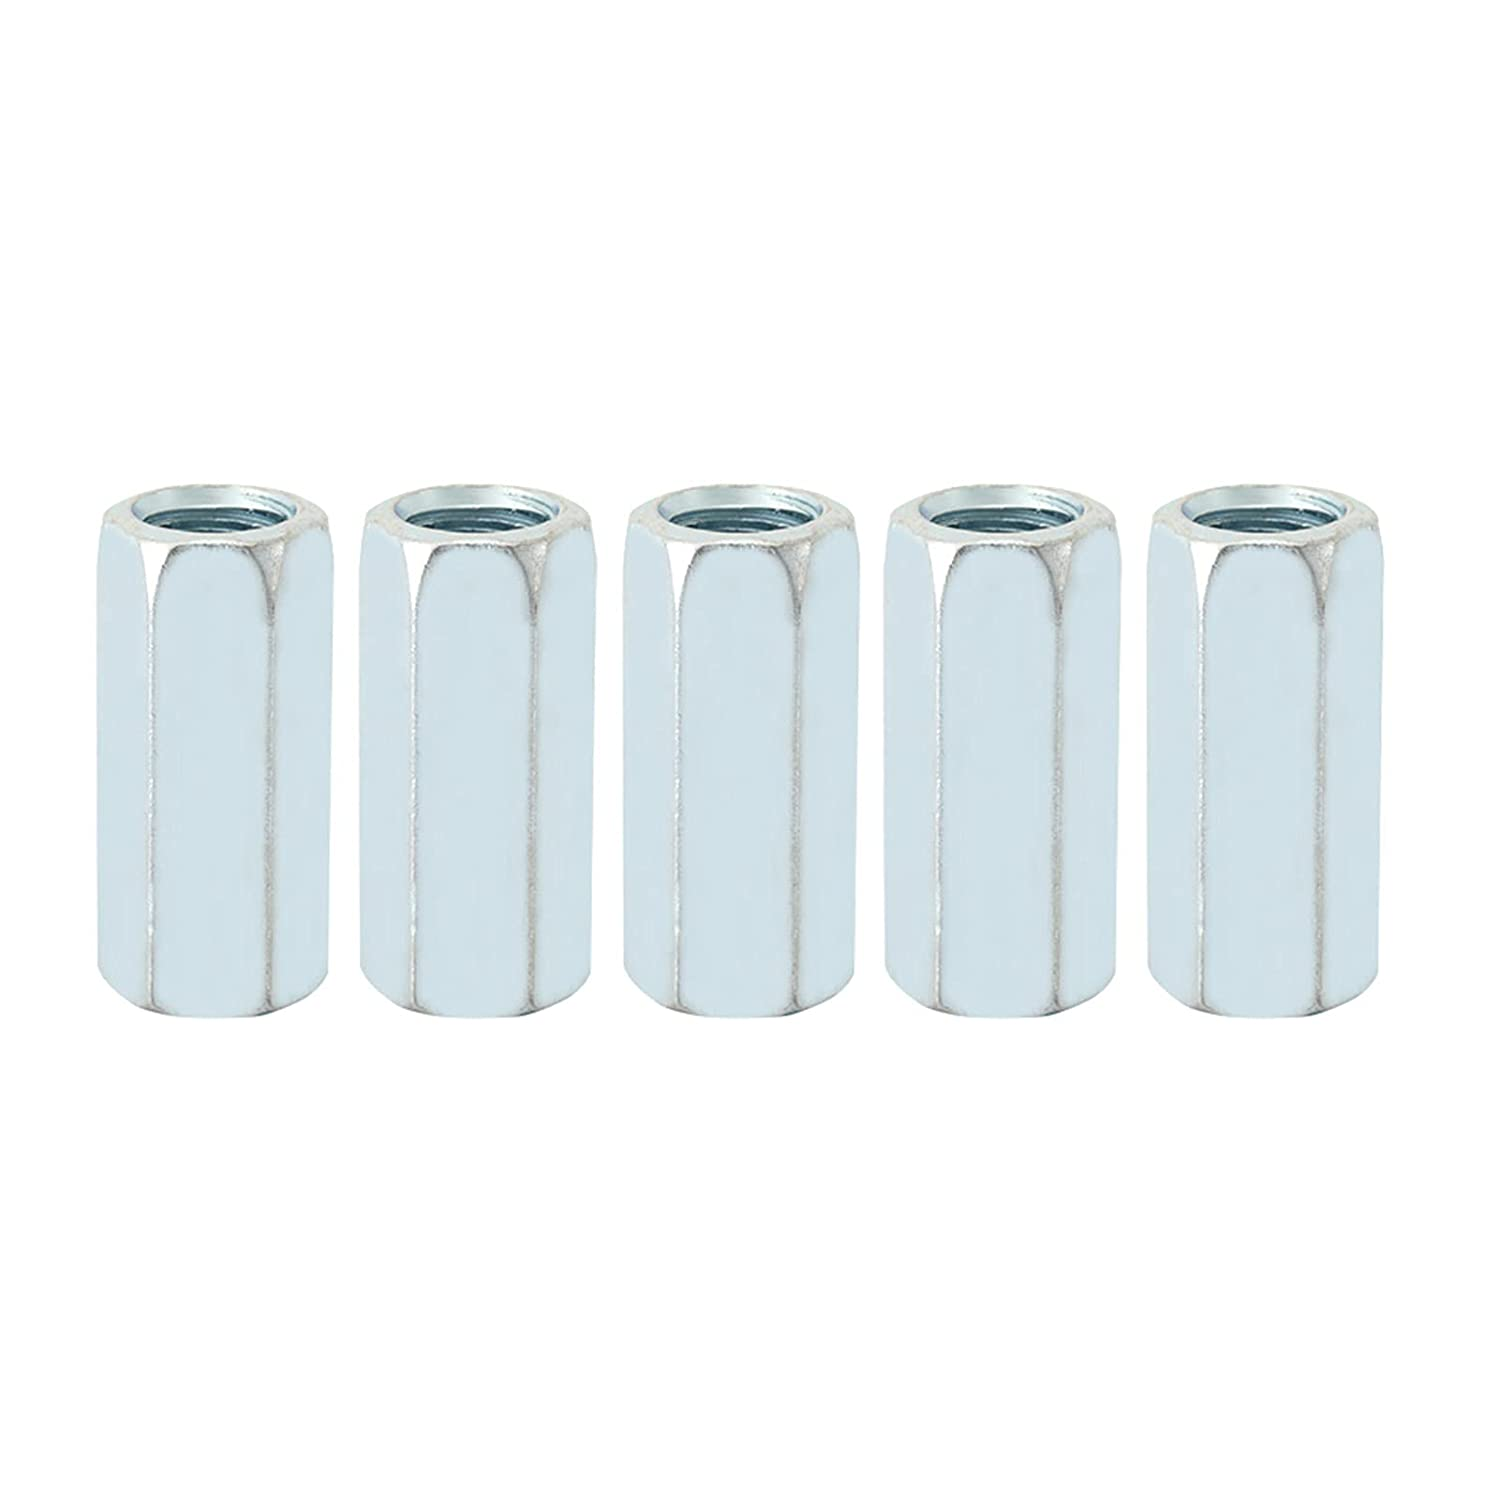 5pcs Las Vegas Mall Long Rod Ranking TOP12 Coupling Hex Nut Zinc Plated Threaded Connector Fa